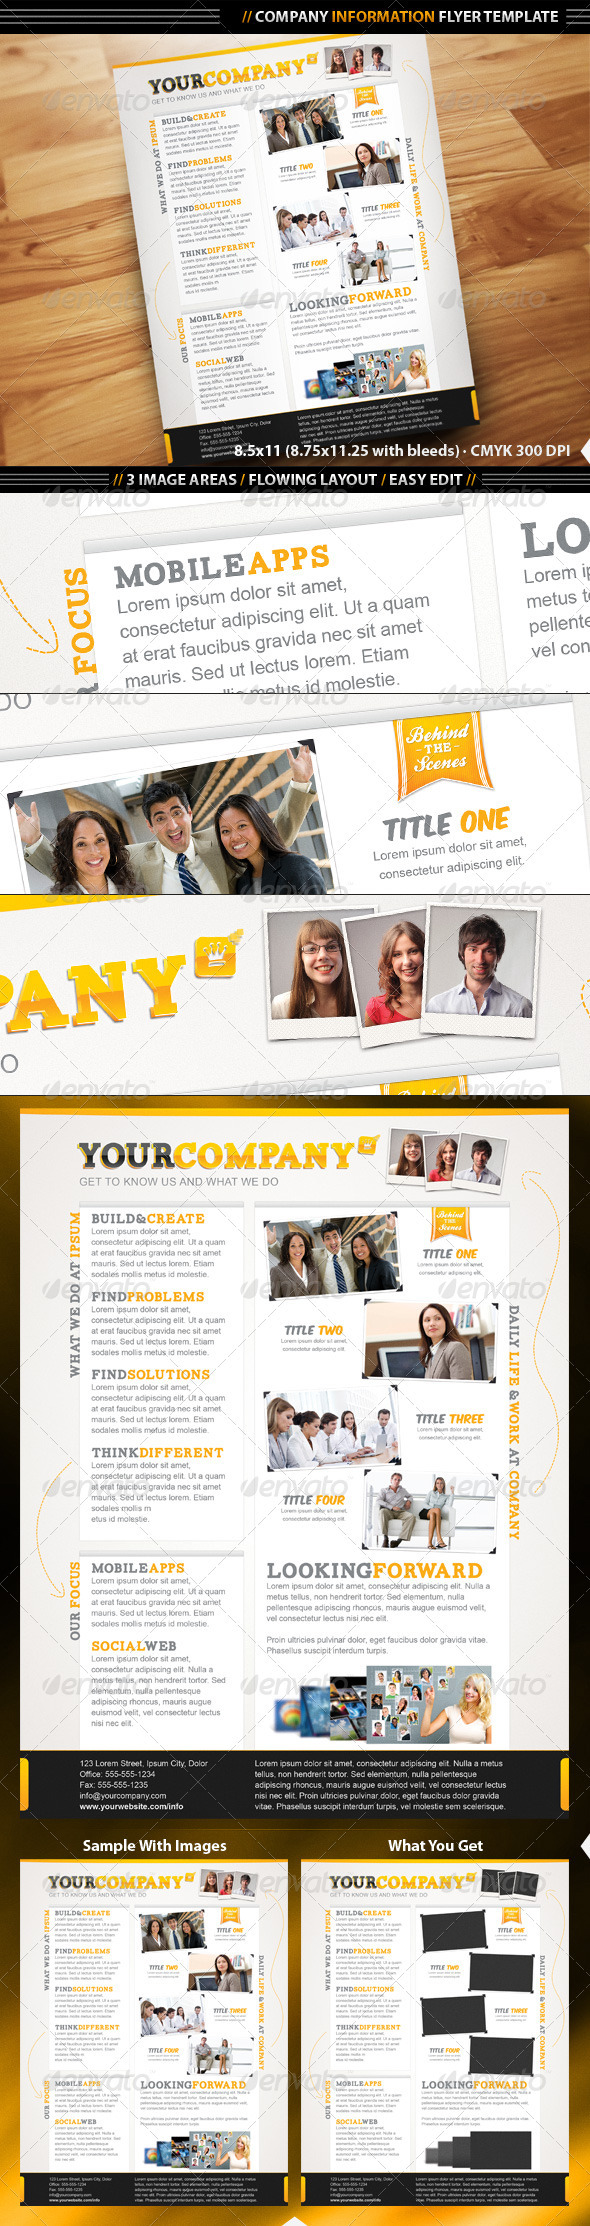 Company Info Flyer Template - Corporate Flyers